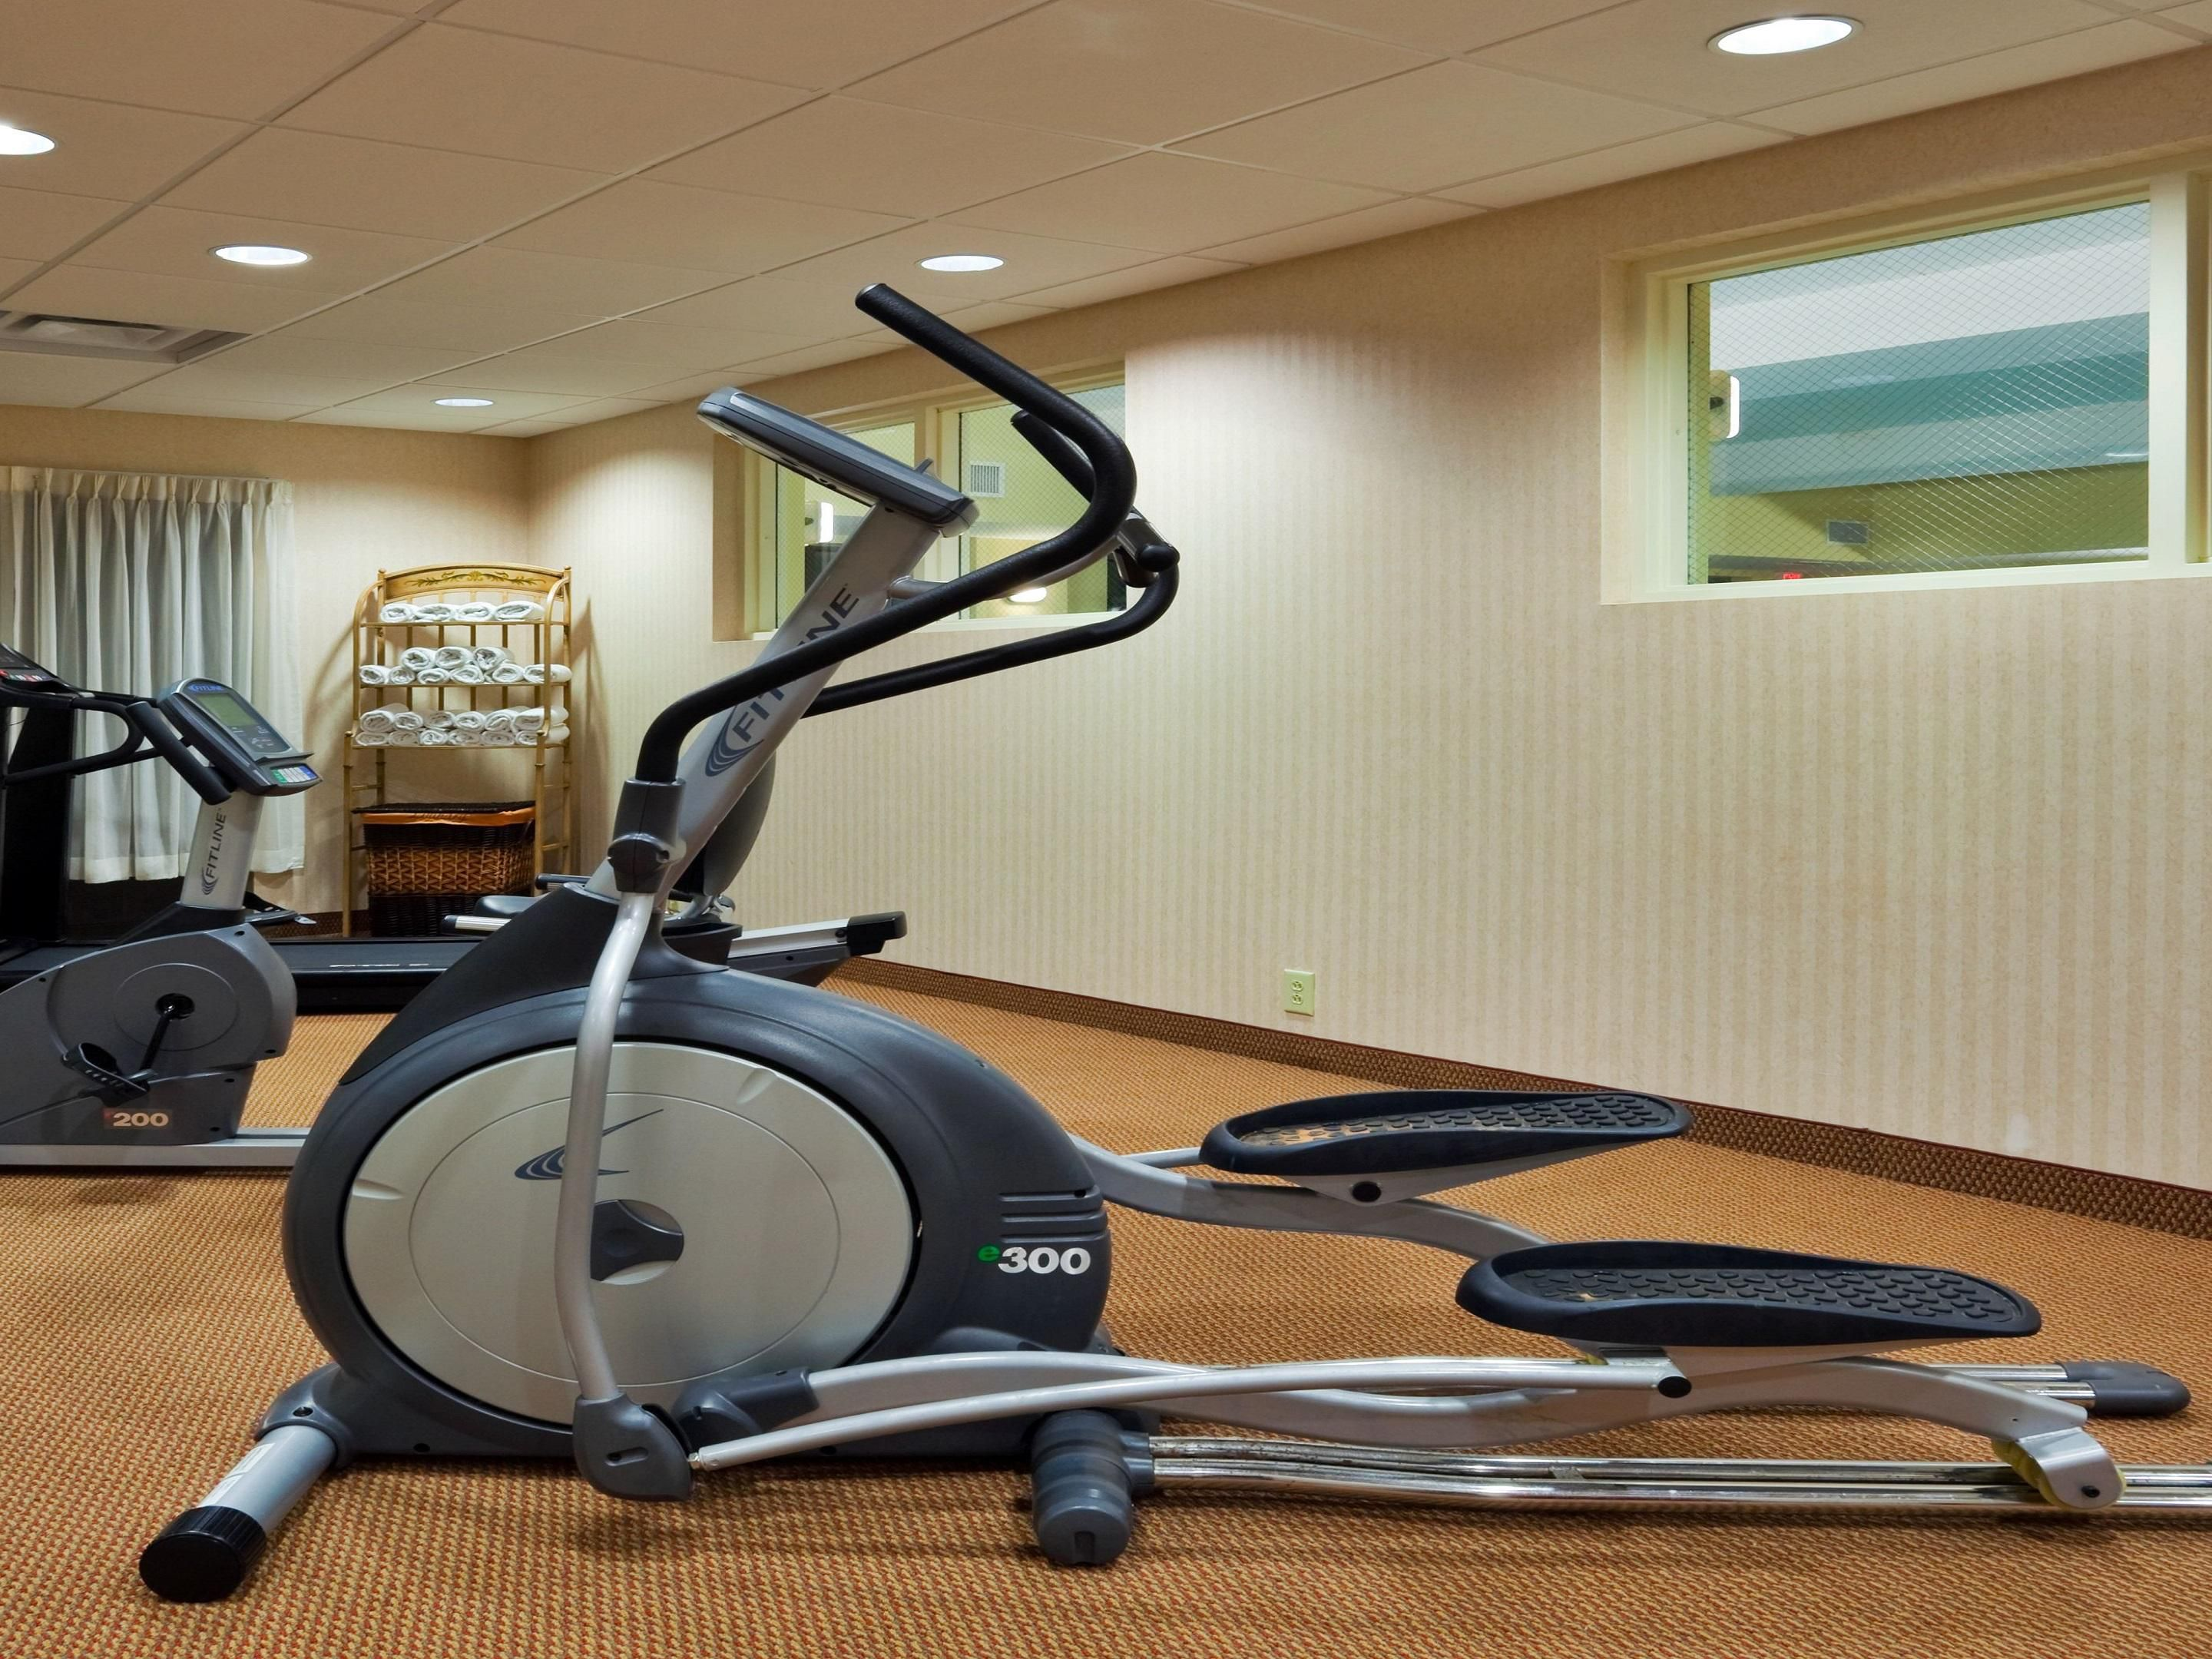 Enjoy our Energetic Exercise Room